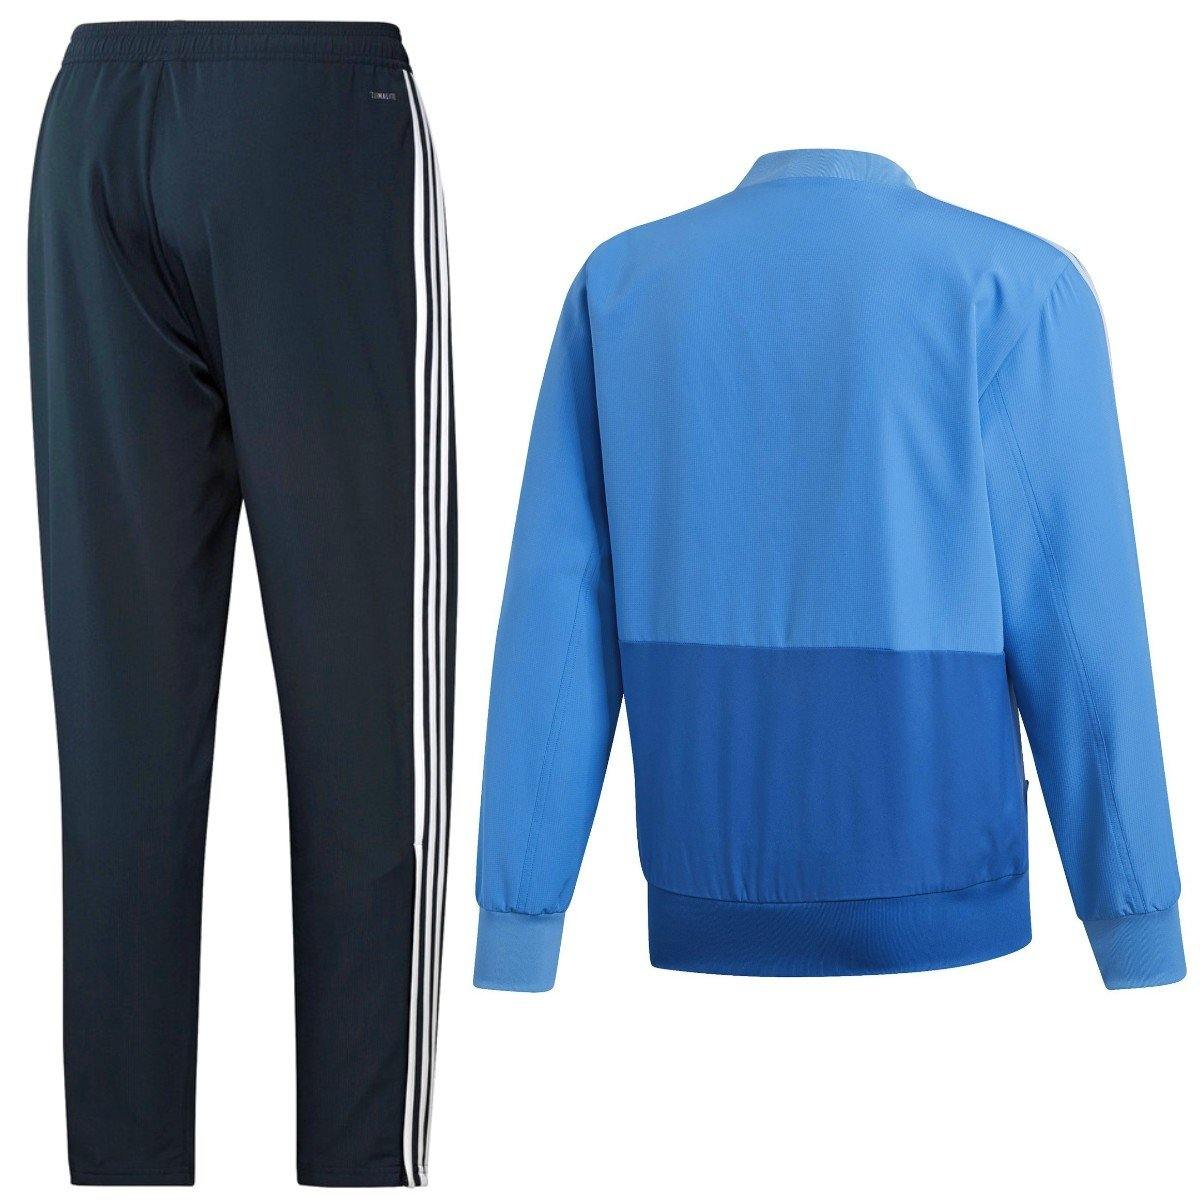 5ed4b2364eb real madrid soccer presentation tracksuit light blue 2019 – adidas.  Download Image 1200 X 1200